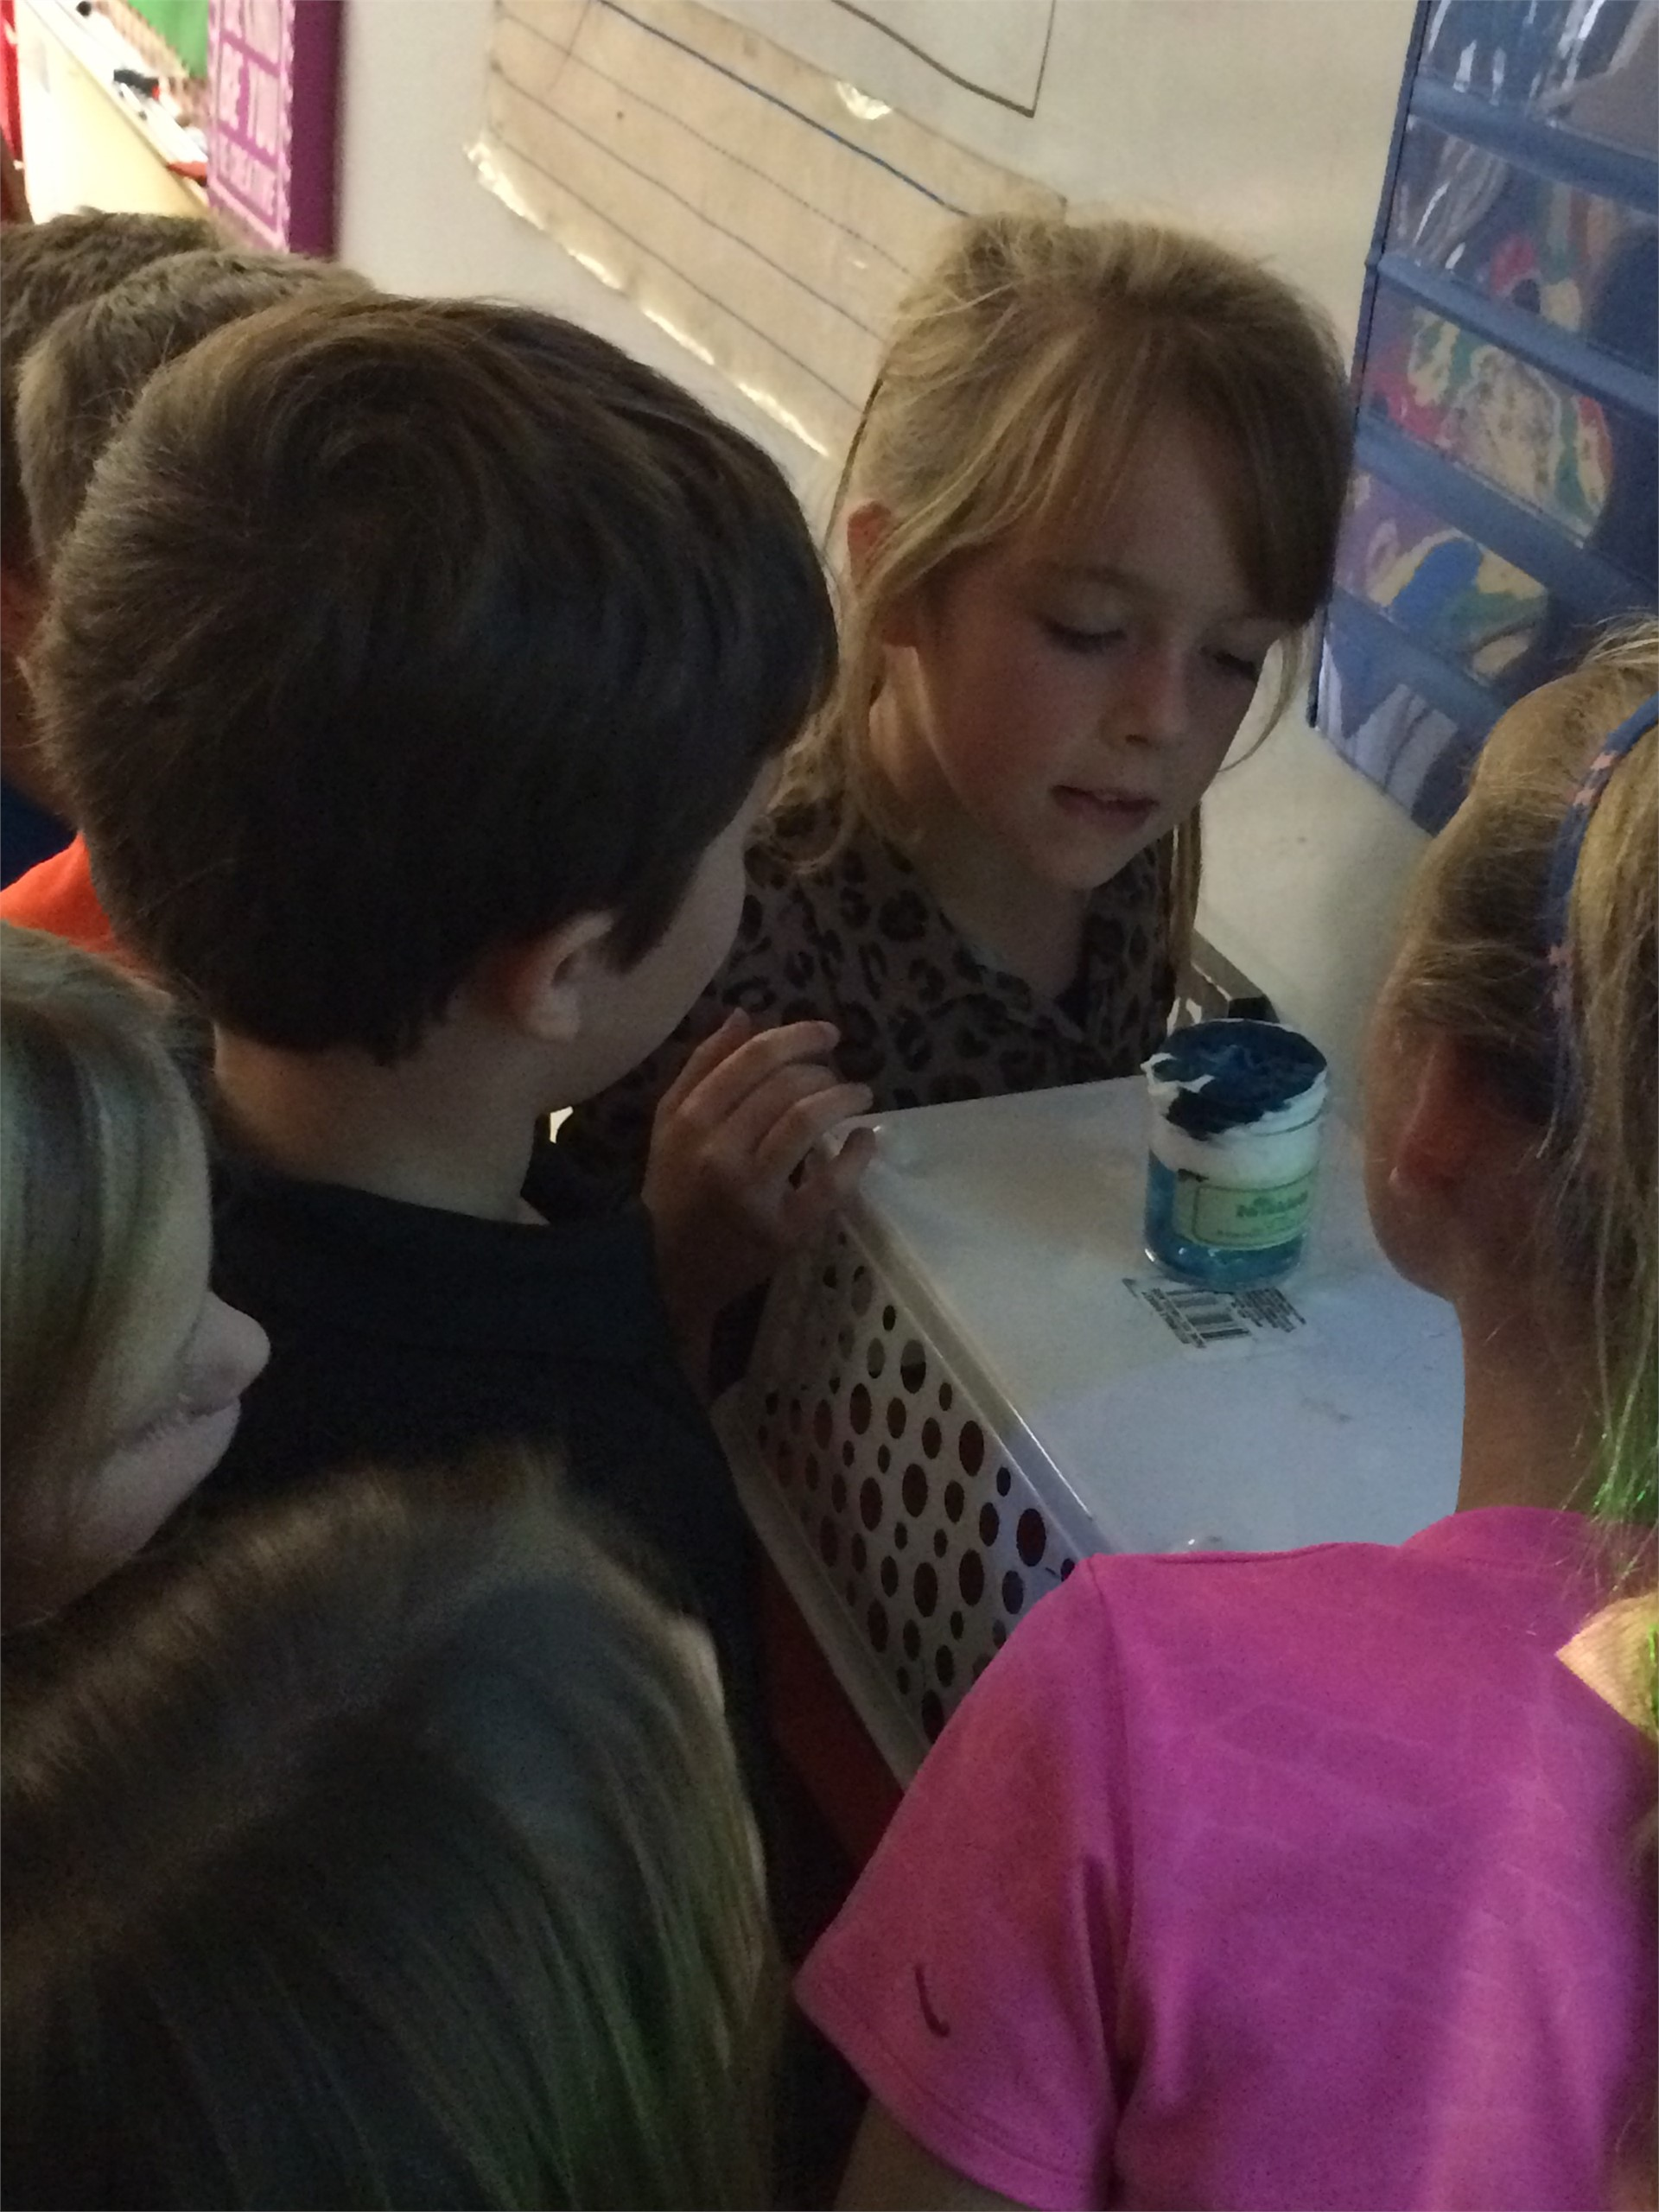 Exploring science through the physical properties of water!